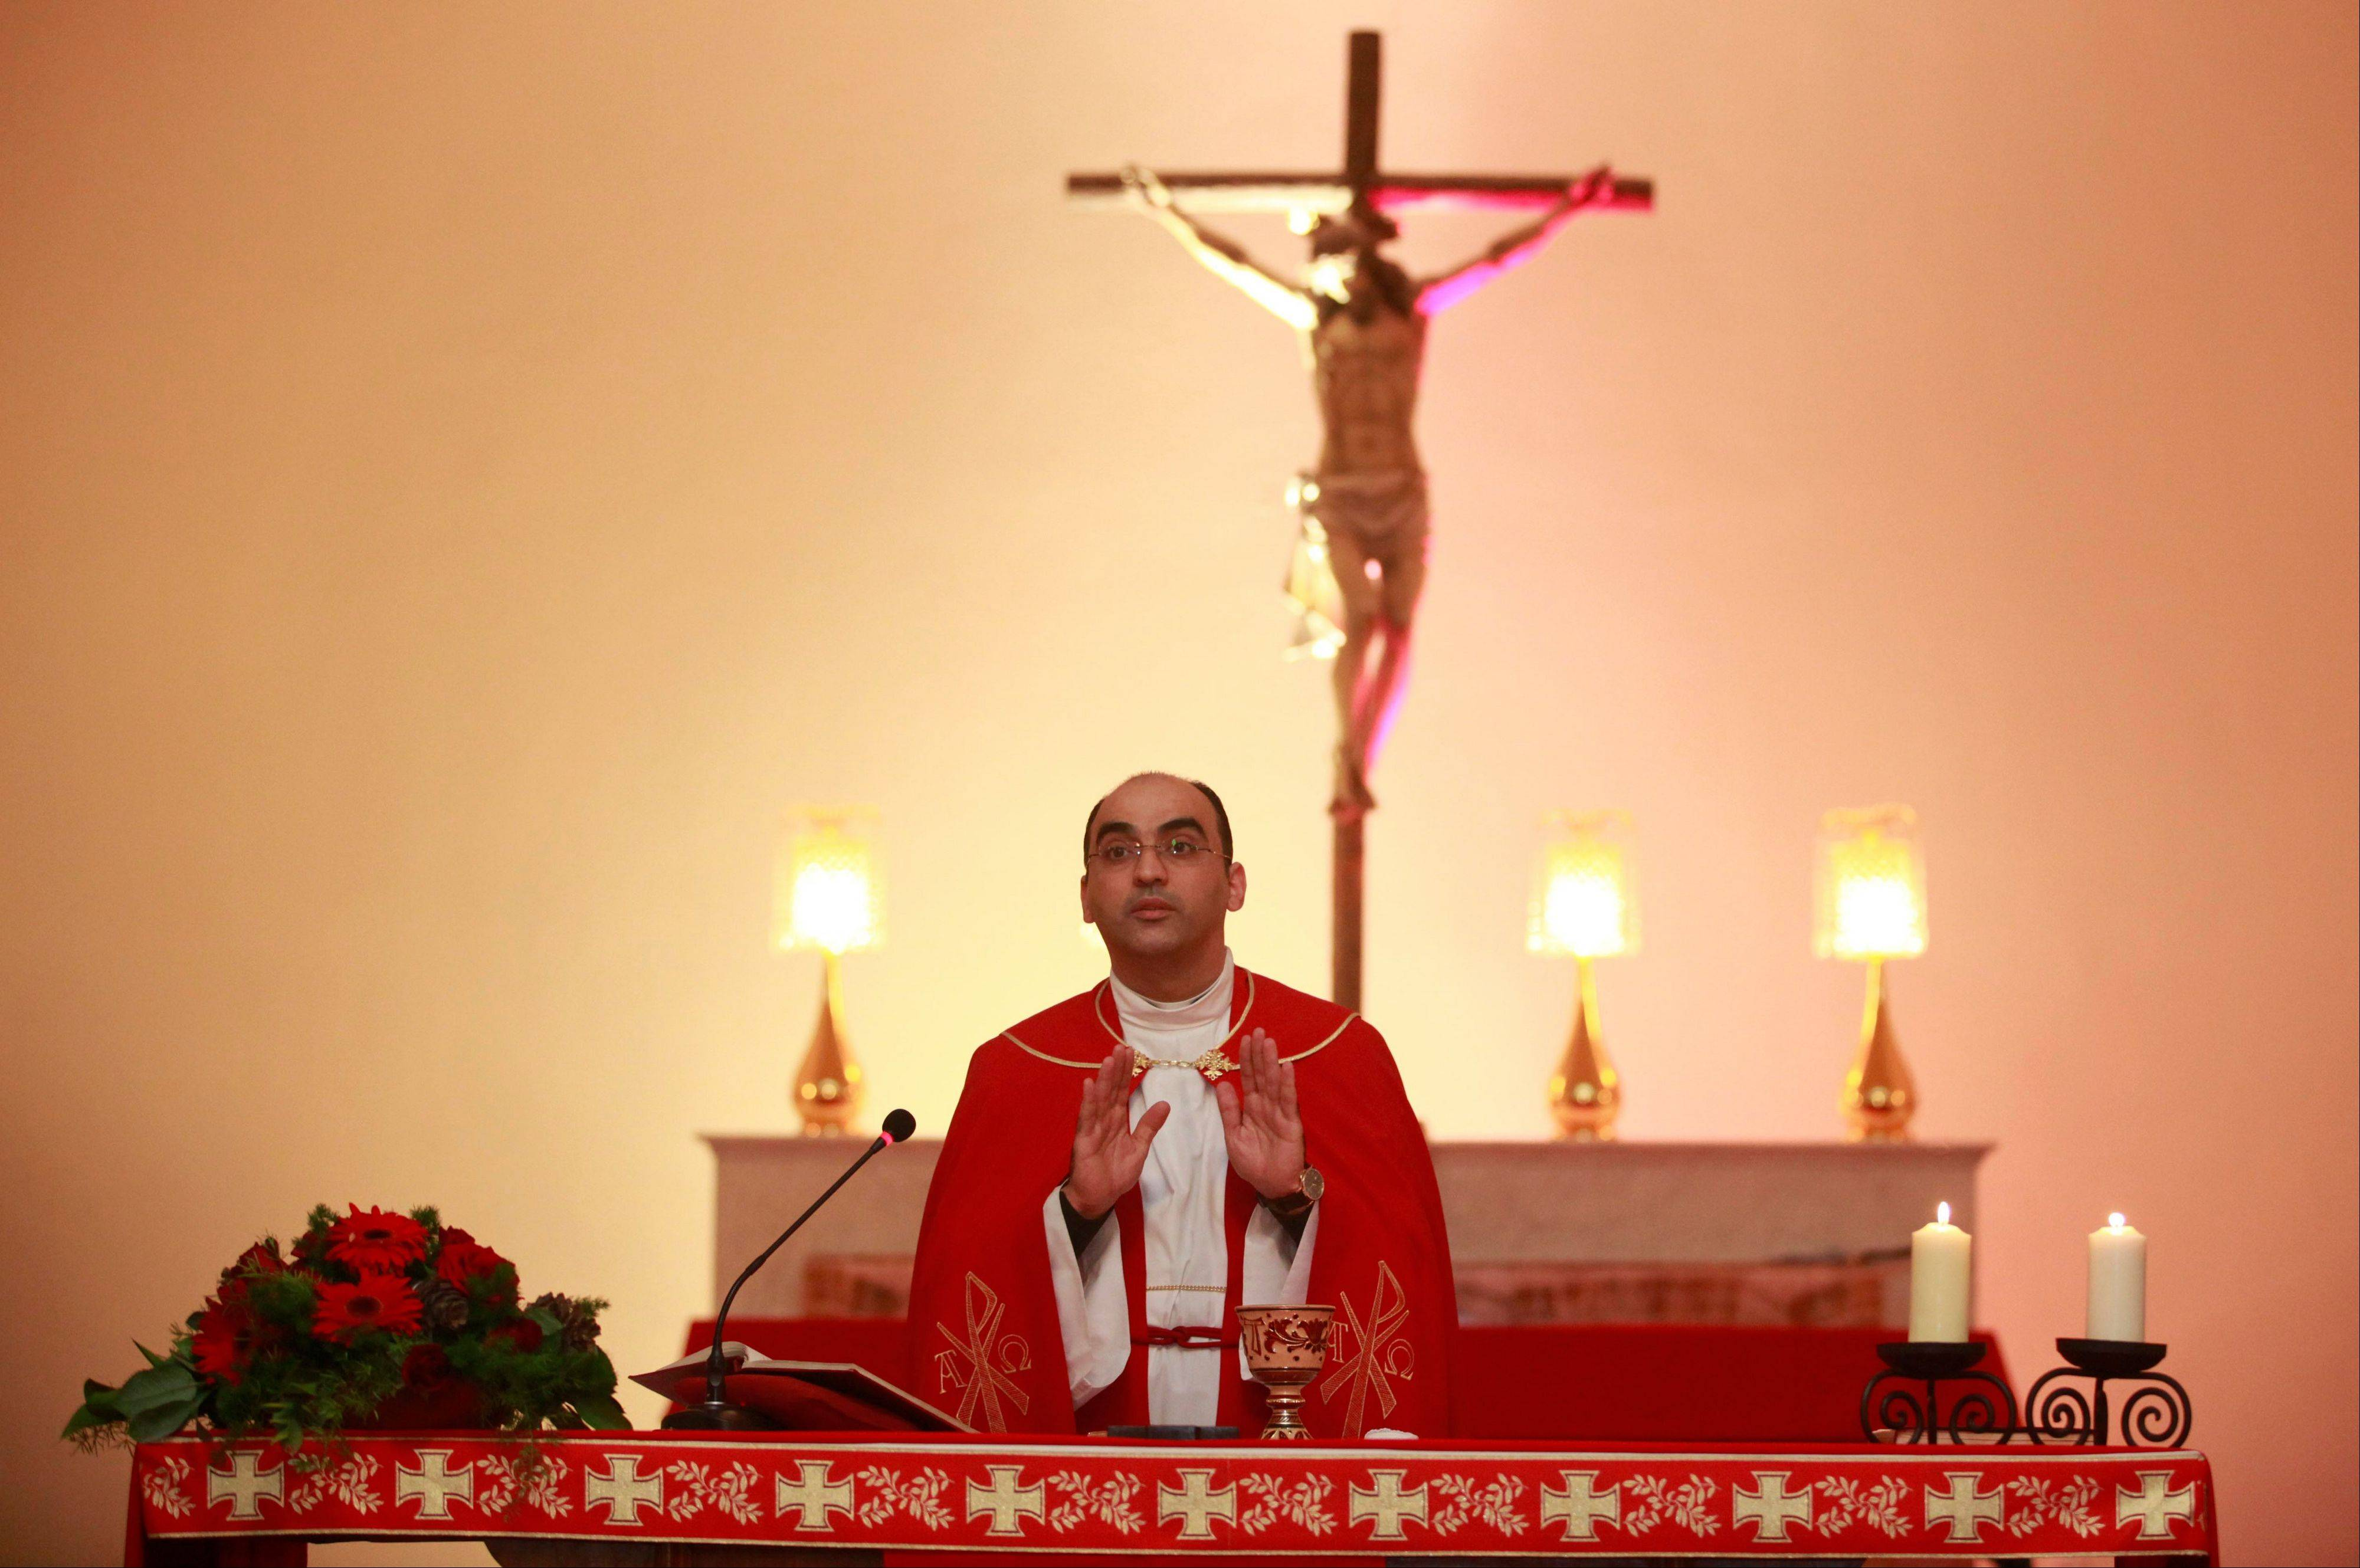 A Chaldean priest address the faithful during a Christmas Eve mass at St. Joseph's Chaldean Church in central Baghdad, Iraq, Monday, Dec. 24, 2012. Iraqi Christians gathered for Christmas Eve services amid tight security. The exact number of Christians remaining in Iraq is not known, but it has fallen sharply from as many as 1.4 million before the U.S.-led invasion nearly a decade ago. Community leaders believe there are about 400,000 to 600,000 Christians left in the country, according to figures from the U.S. State Department.